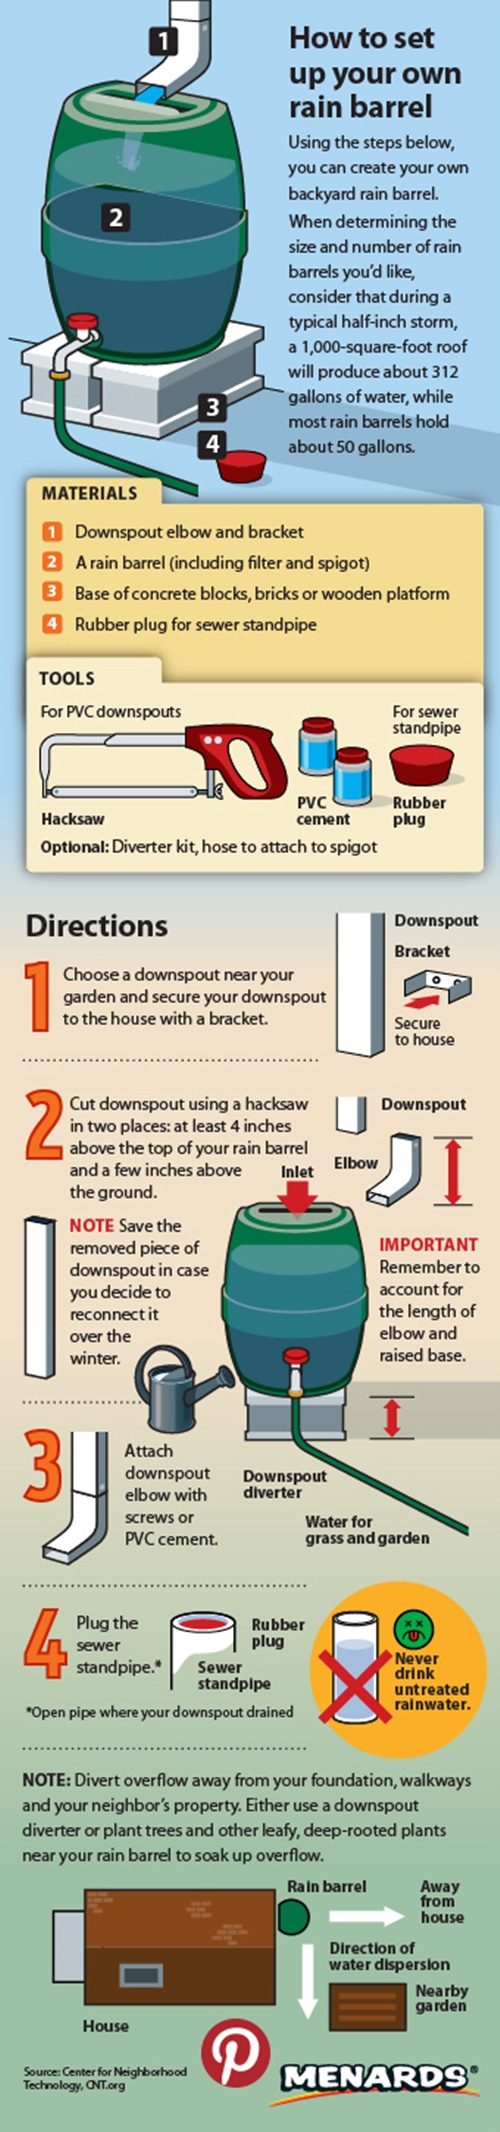 How to set up a rain barrel infographic homesteader for How to make your own rain barrel system